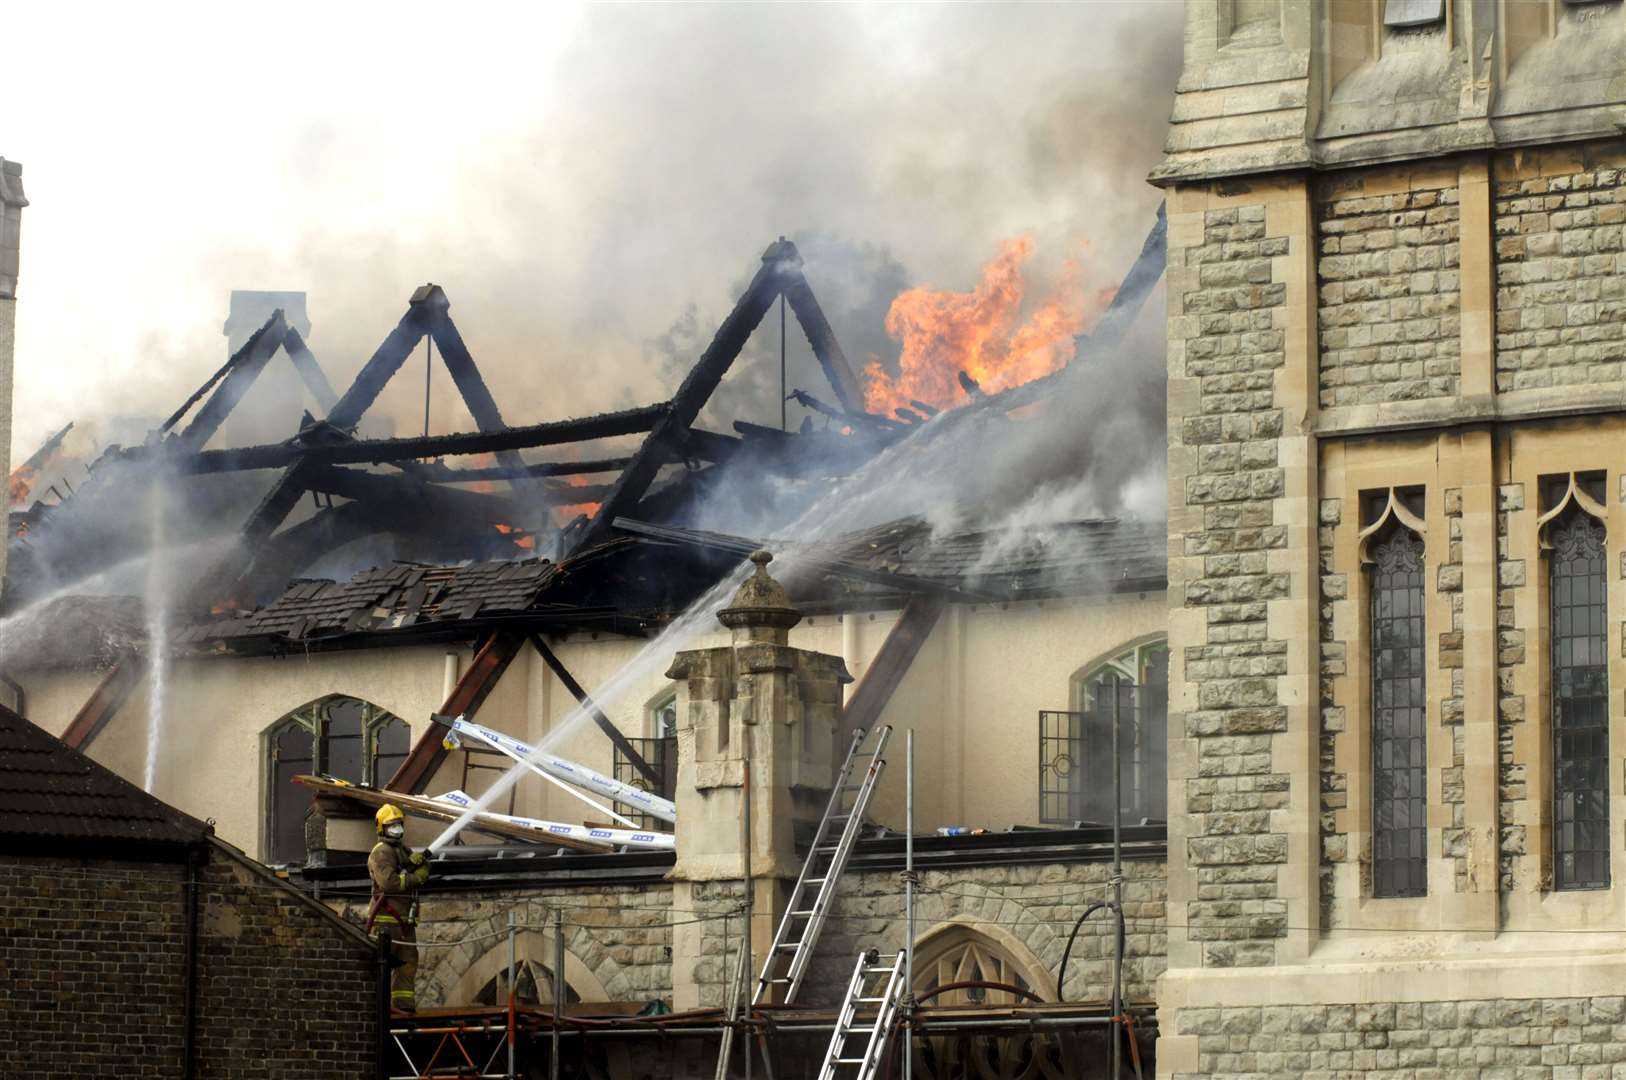 It took fire crews 12 hours to control the blaze 12 years ago. Picture: Terry Scott